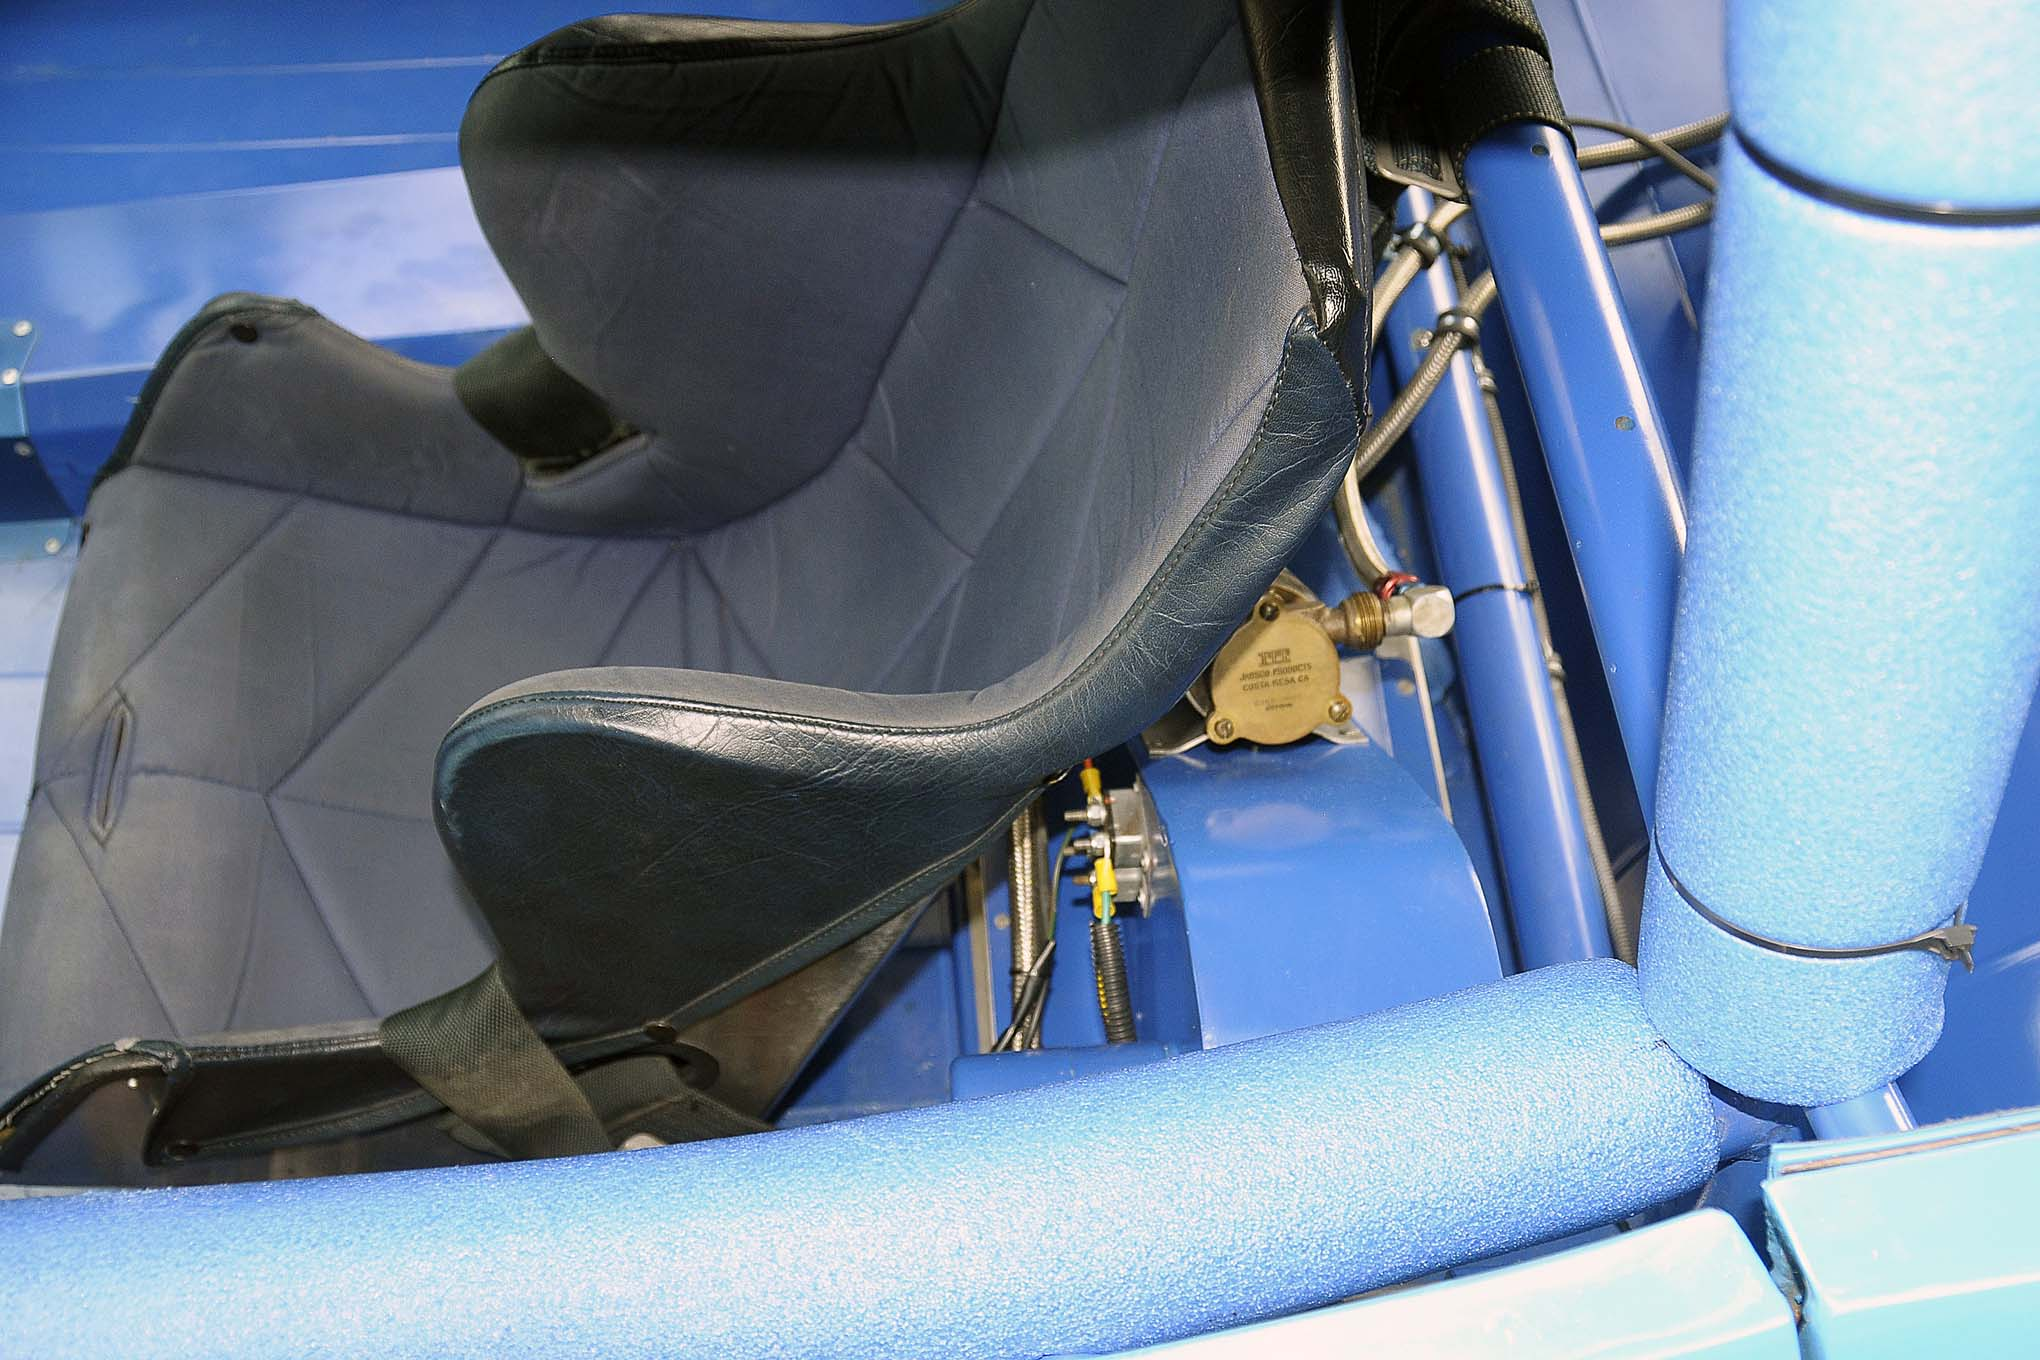 The racing seat, sans headrest, shows it to be mounted just as it was in the early '70s, bolted to the upper and lower rollcage bars.